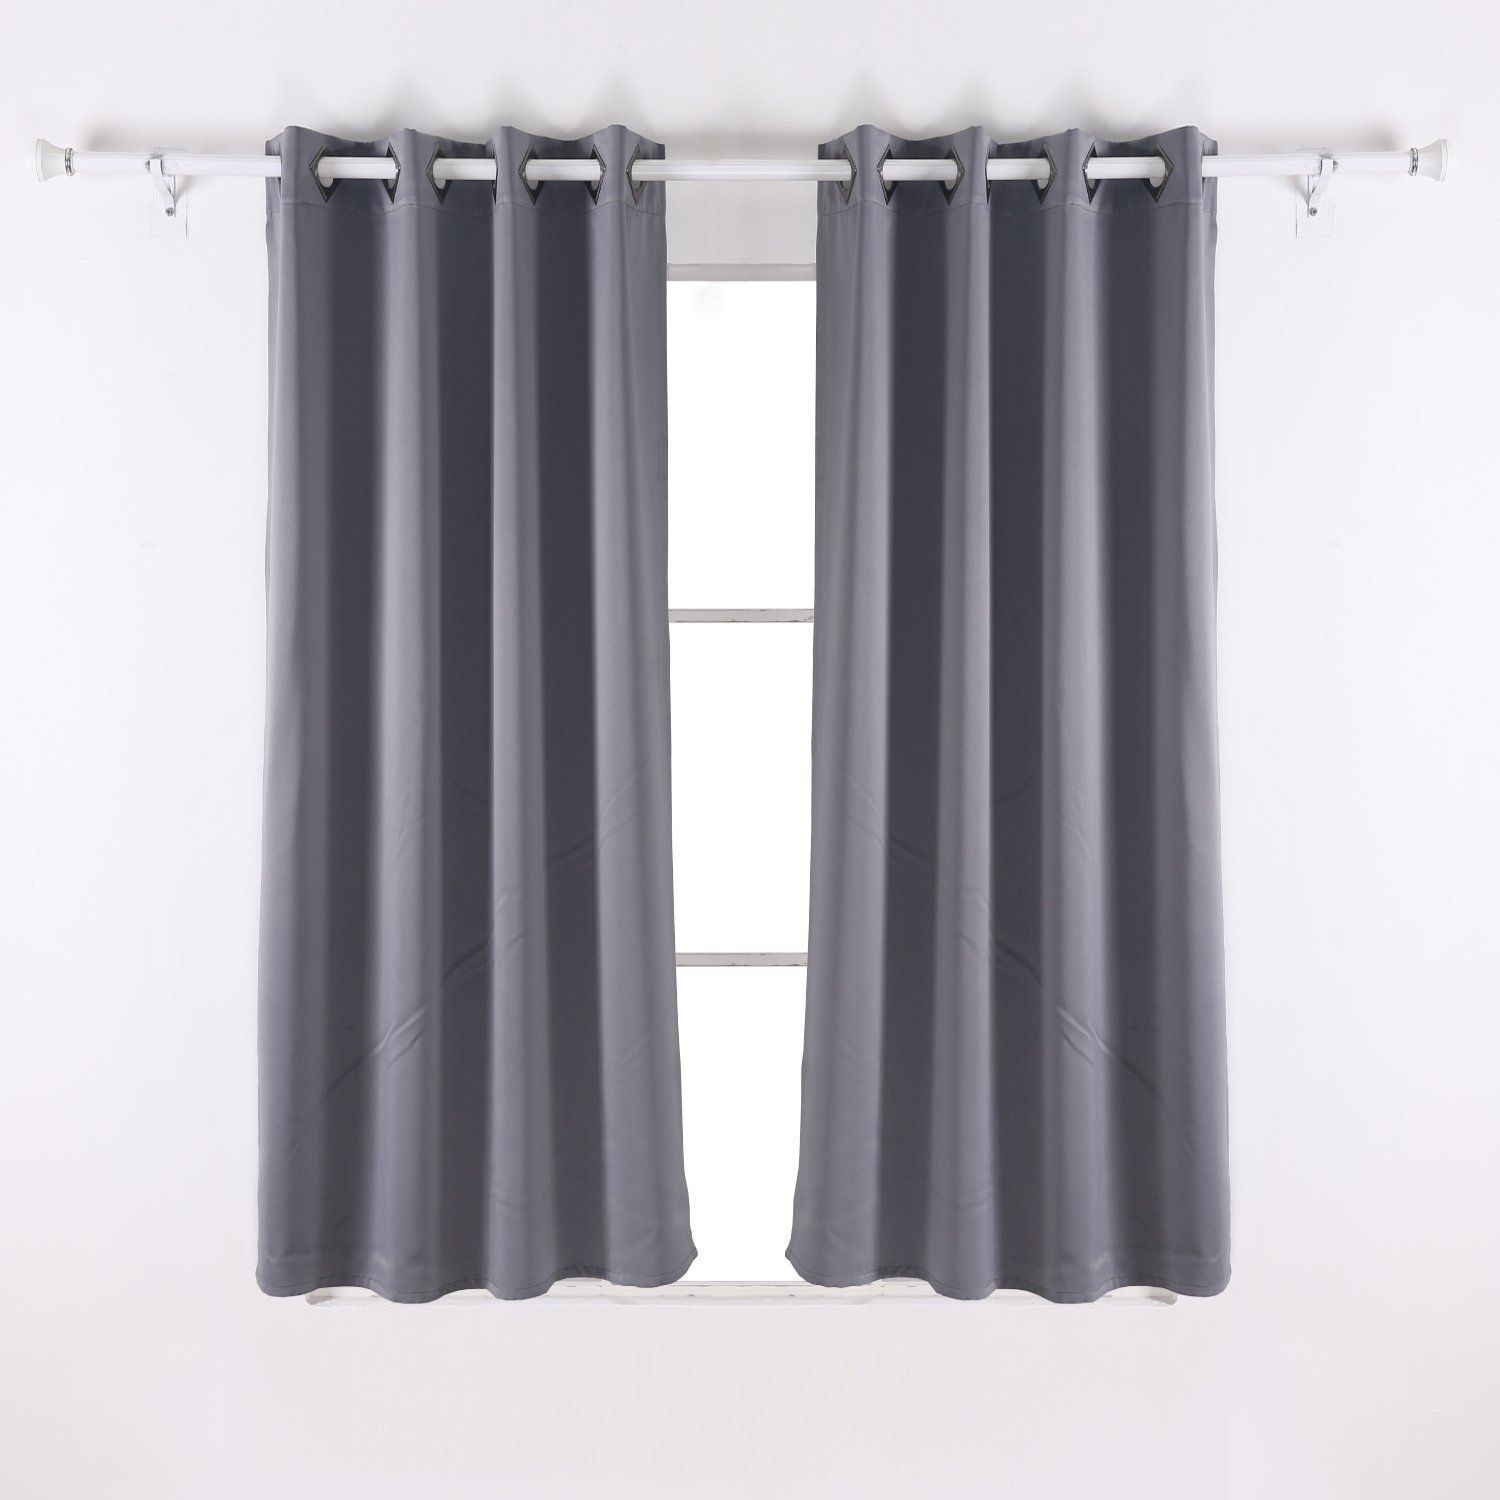 Different Specifications A Of Magnetic Curtain Rods Amazon Com Deconovo Solid Room Darkening Curtains Thermal Insulated Blackout Curtains Grommet Blind Dwjwgqr Thermal Insulated Blackout Curtains Room Darkening Curtains Insulated Blackout Curtains